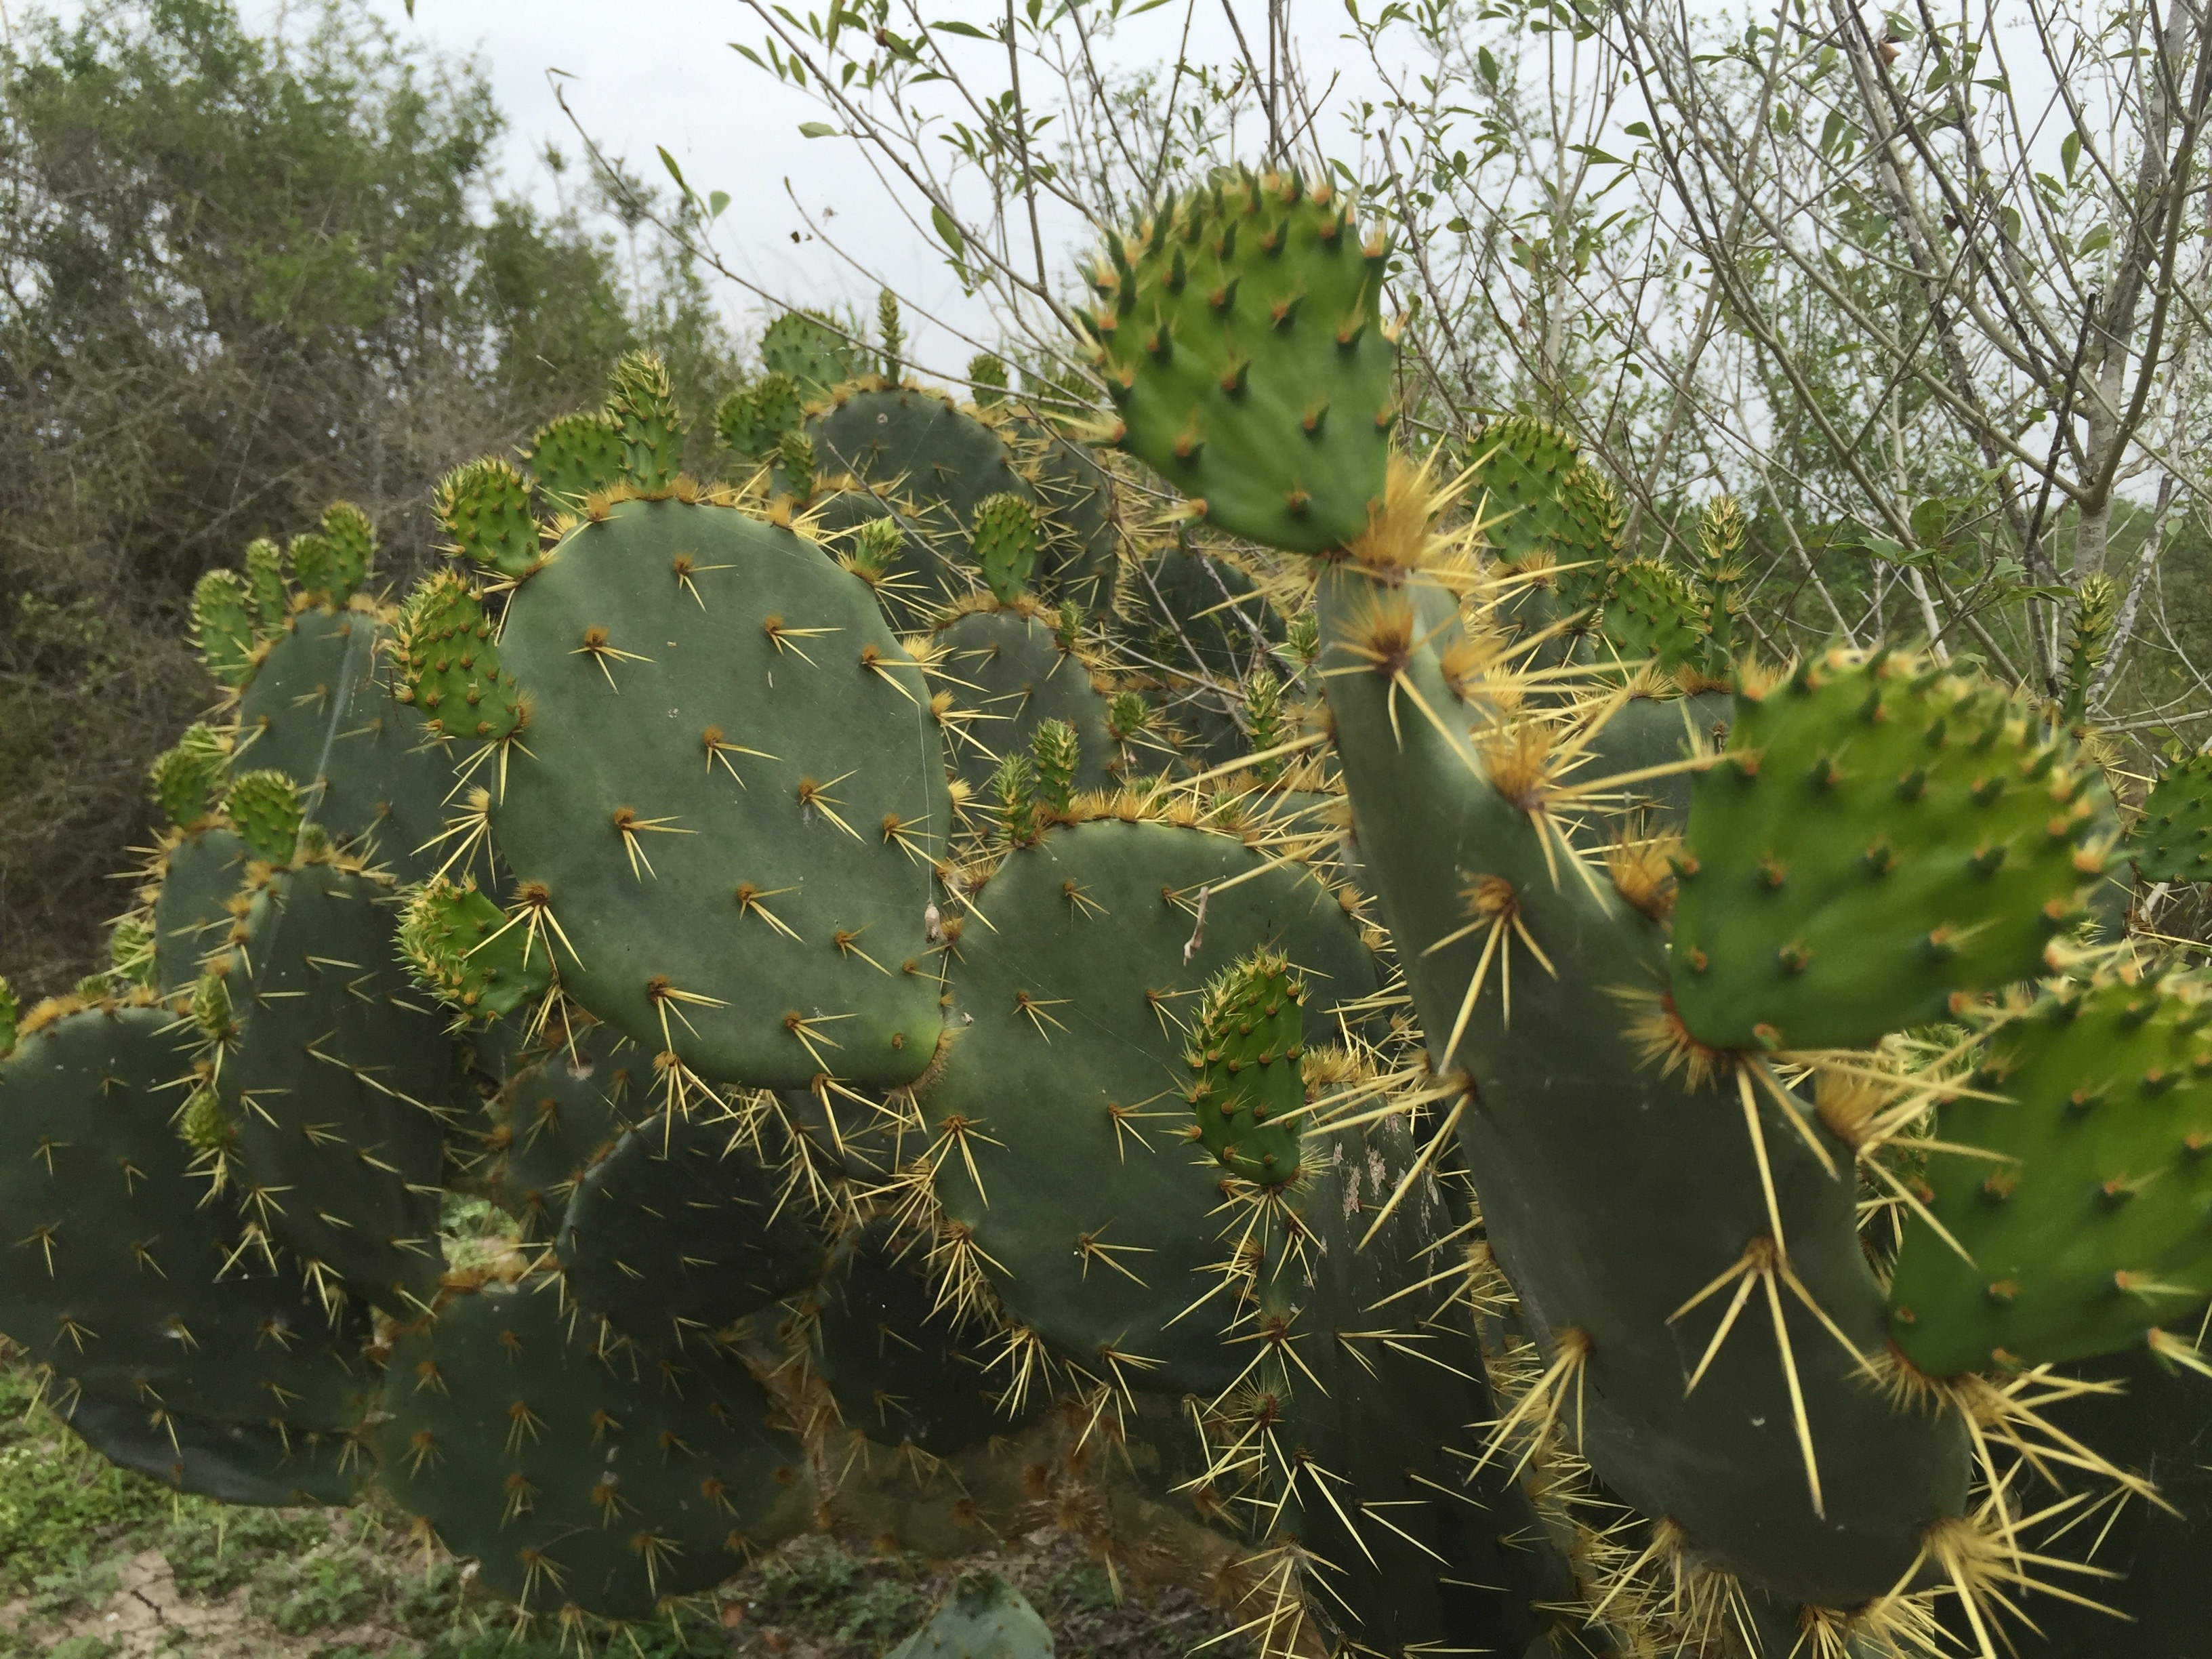 5 Facts About Prickly Pear Cactus – Explore Texas